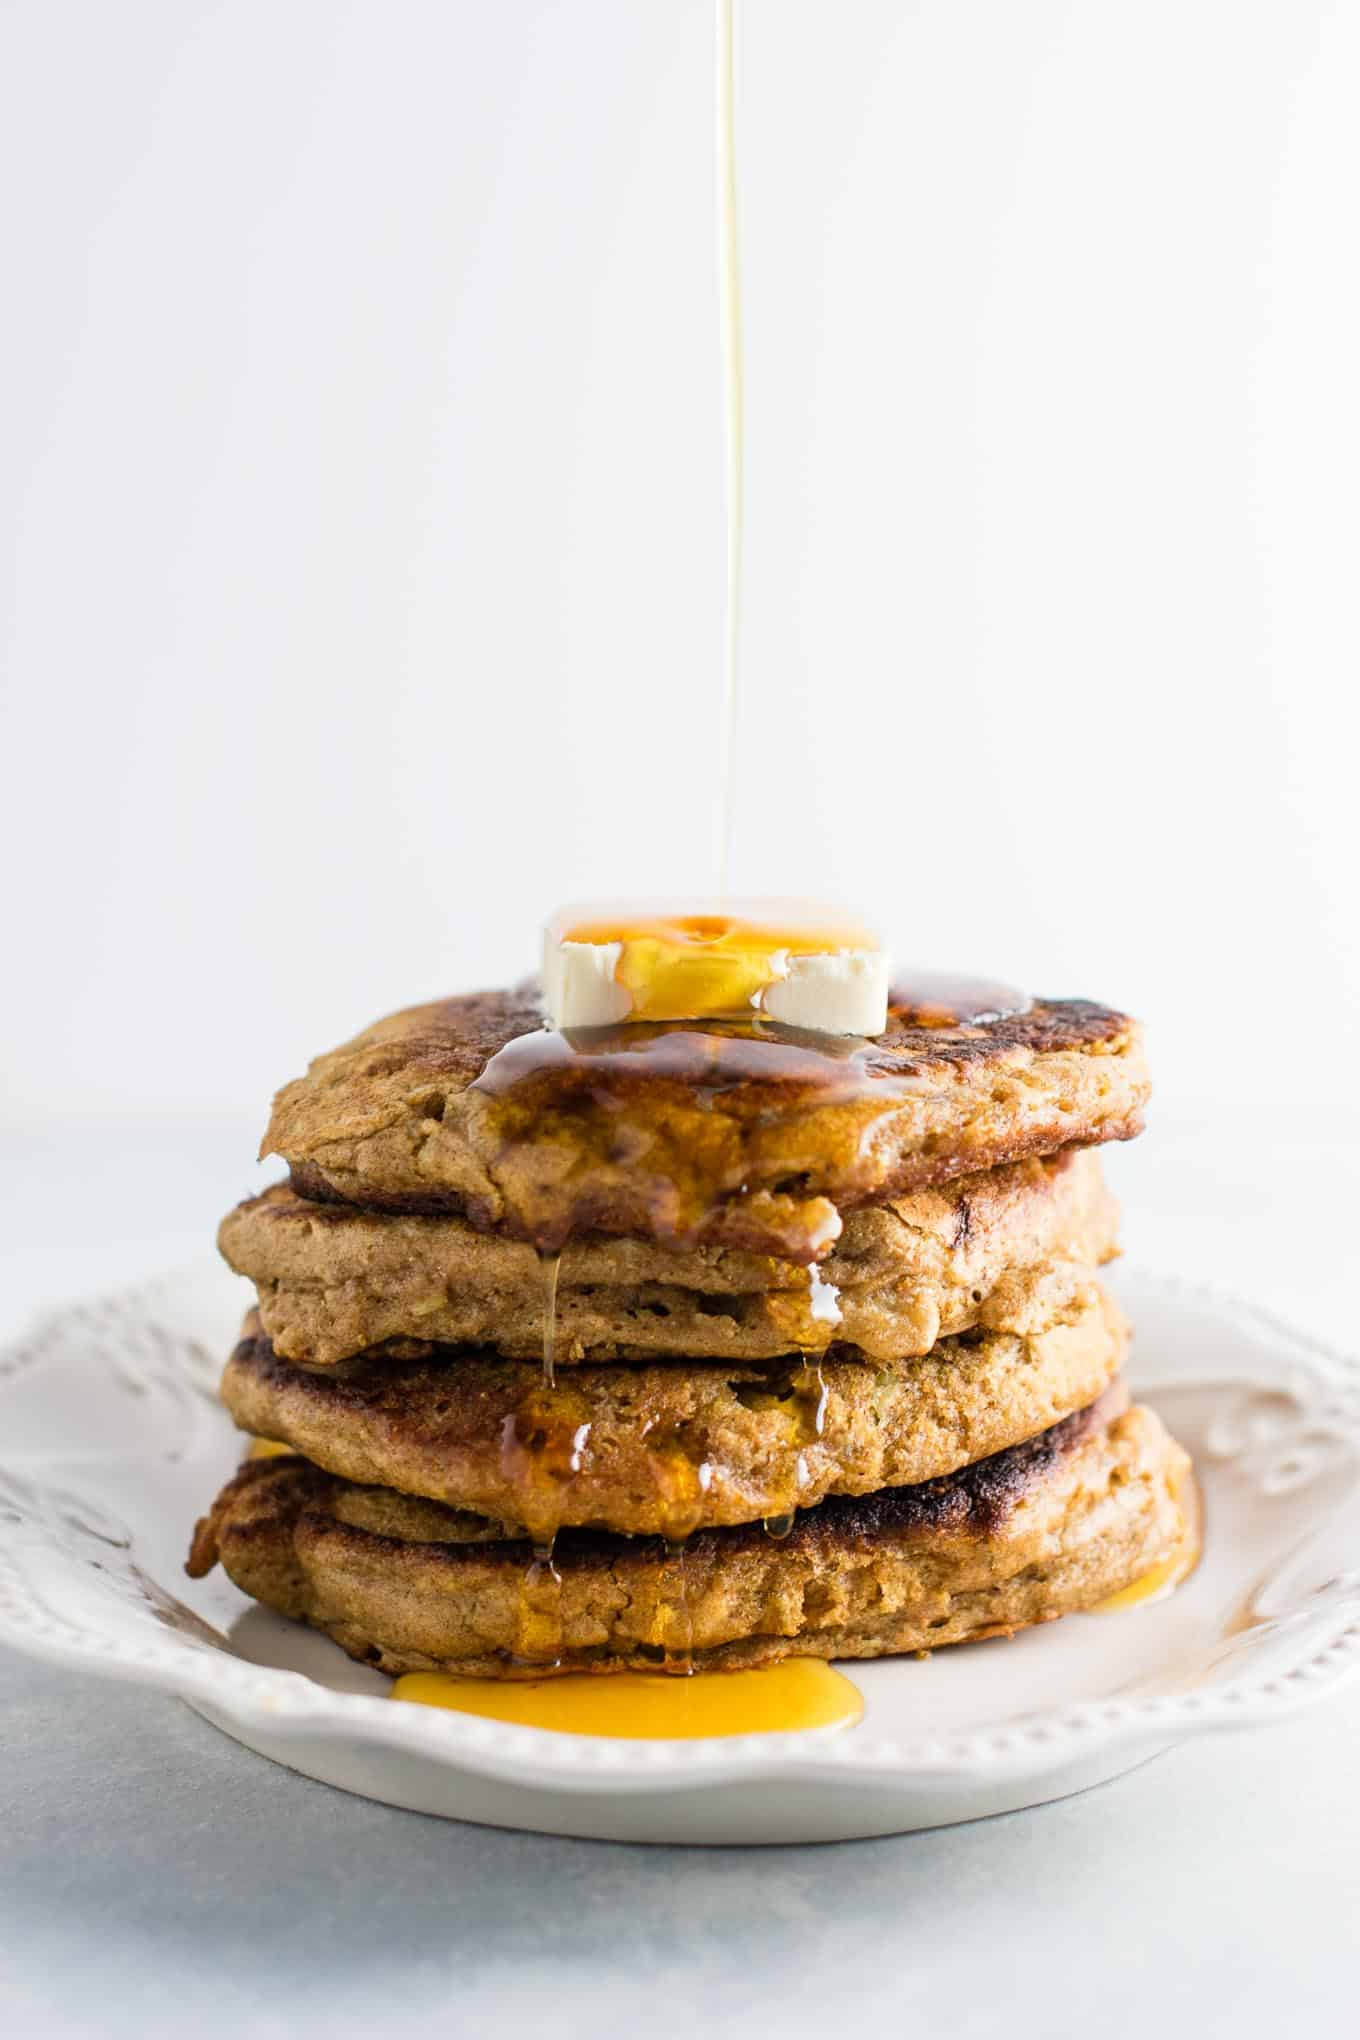 Healthy banana bread pancakes made with greek yogurt and whole wheat flour. These are amazing! #healthy #breakfast #bananabread #bananapancakes #pancakes #greekyogurt #wholewheat